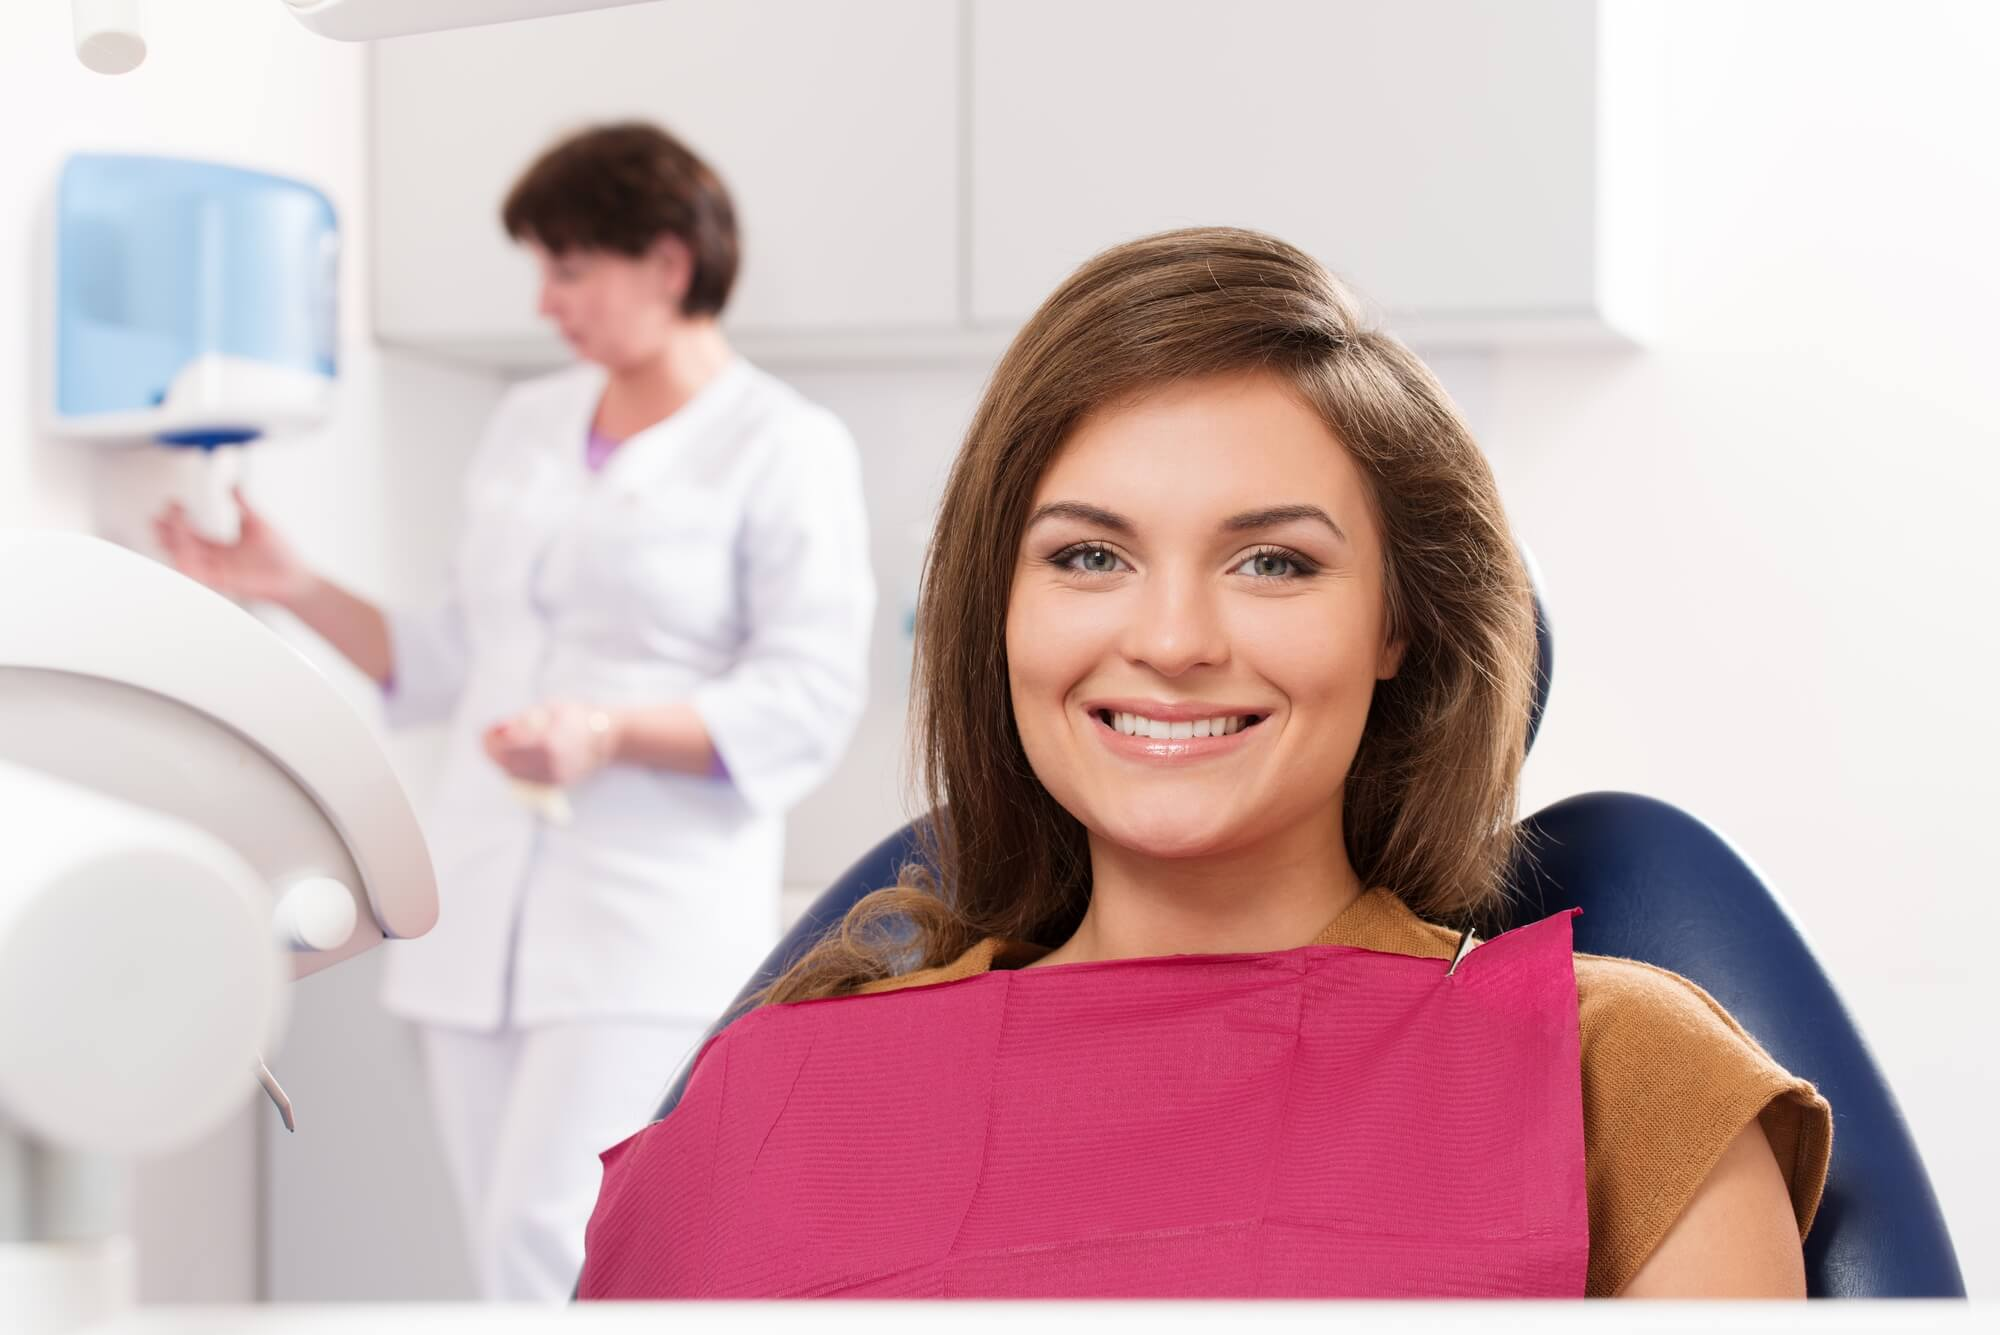 where is the best dentist in west palm beach?